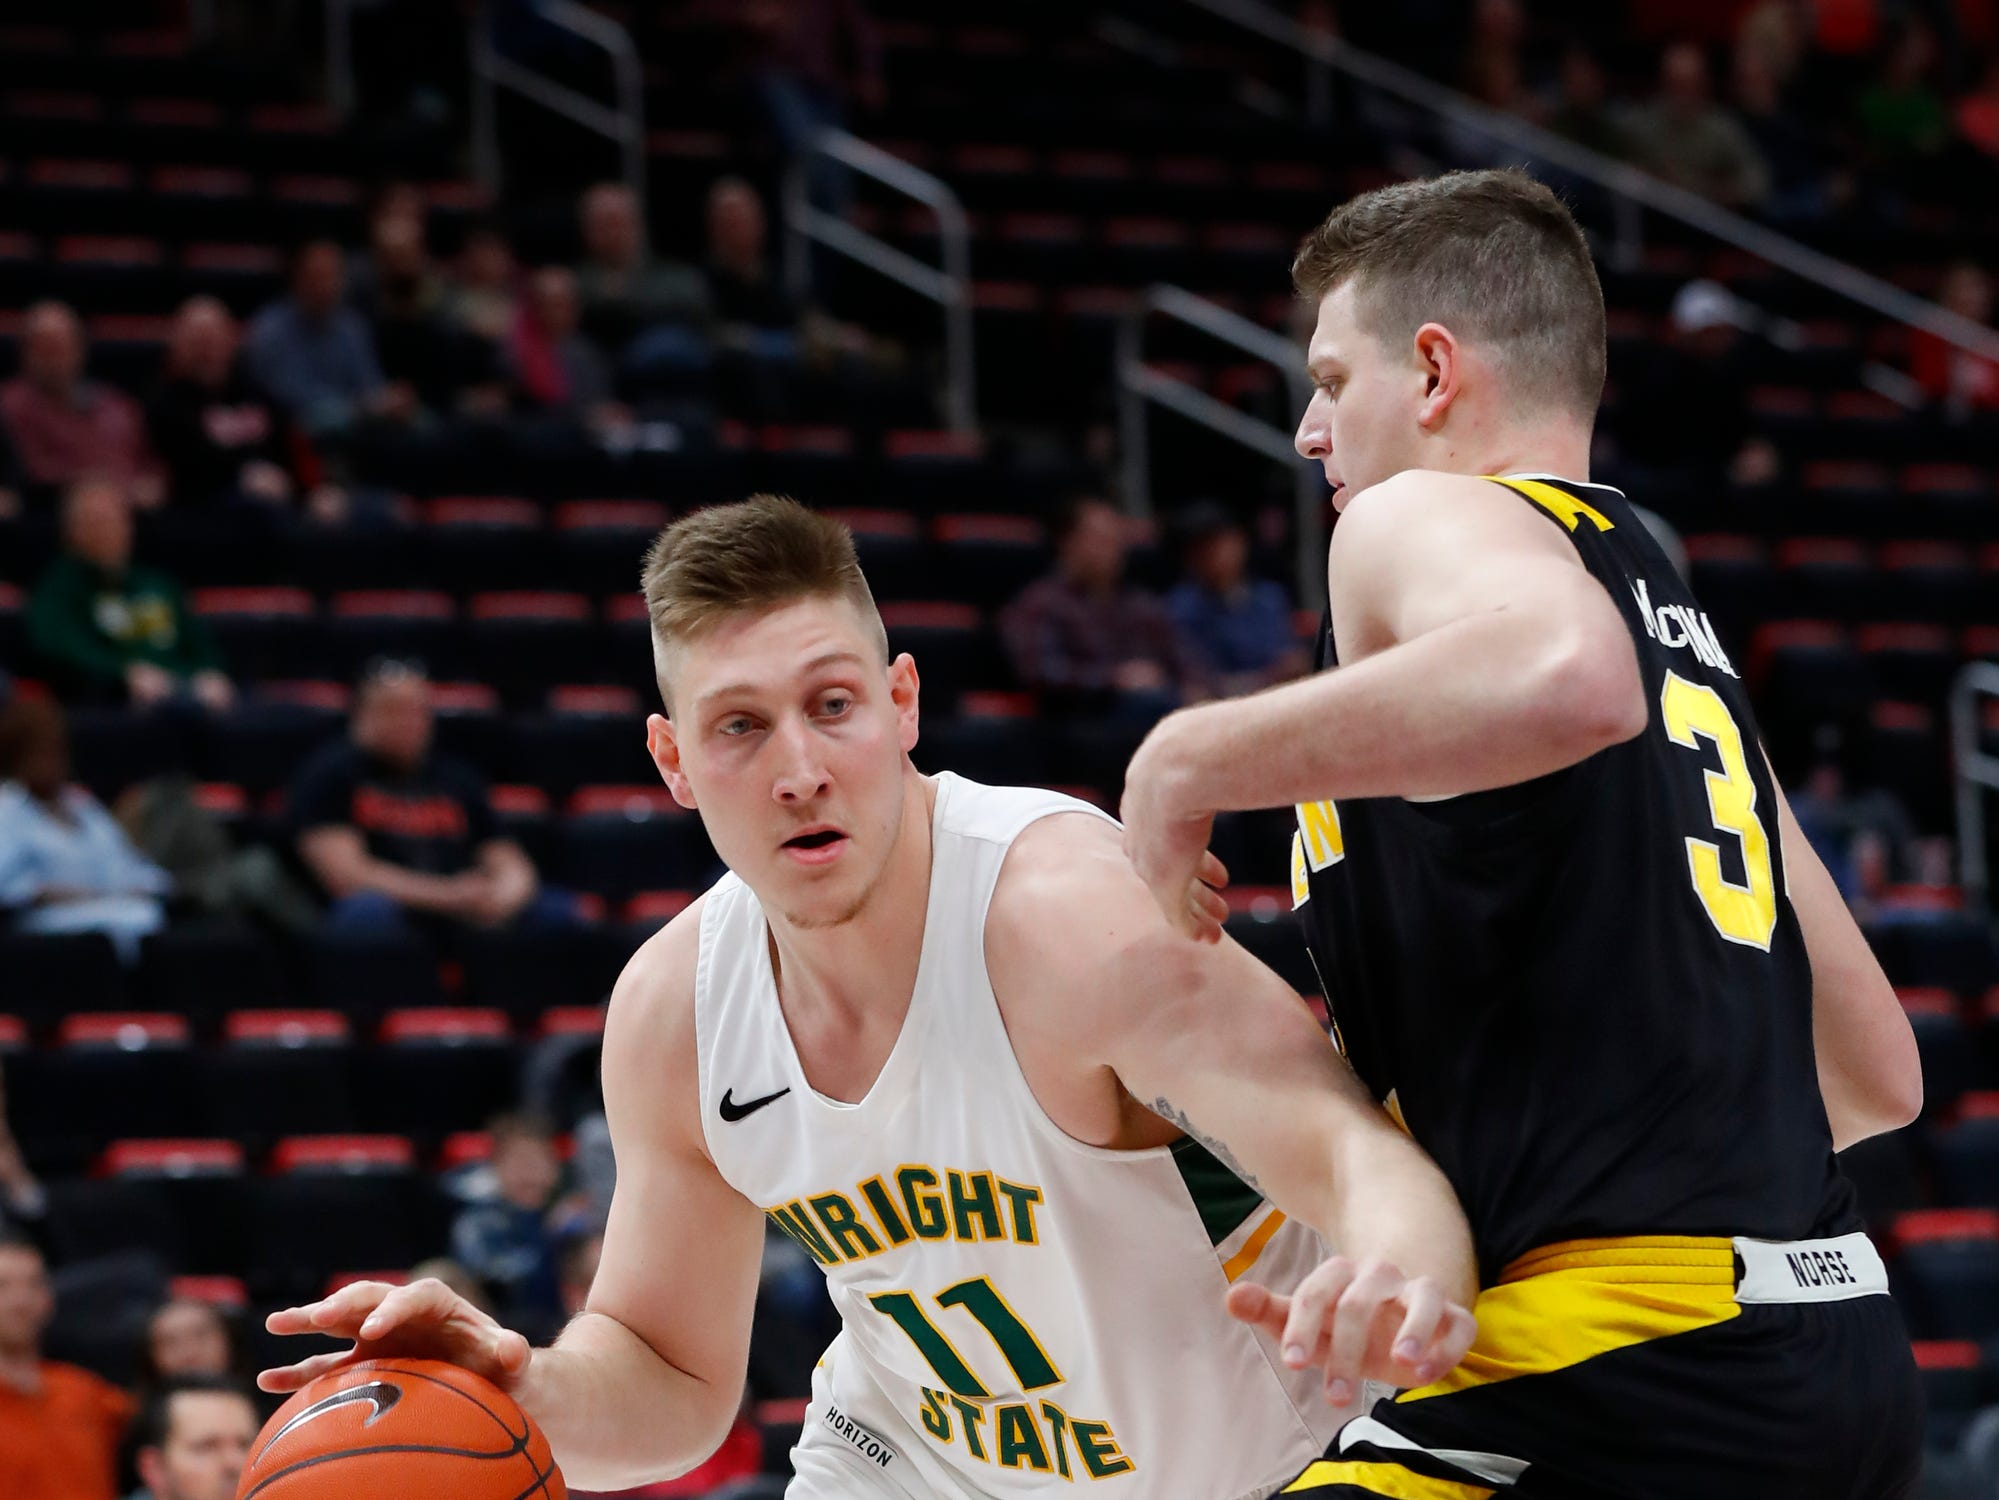 Wright State center Loudon Love (11) drives on Northern Kentucky forward Drew McDonald (34) in the first half of an NCAA men's basketball game in the Horizon League conference tournament championship in Detroit, Tuesday, March 12, 2019.